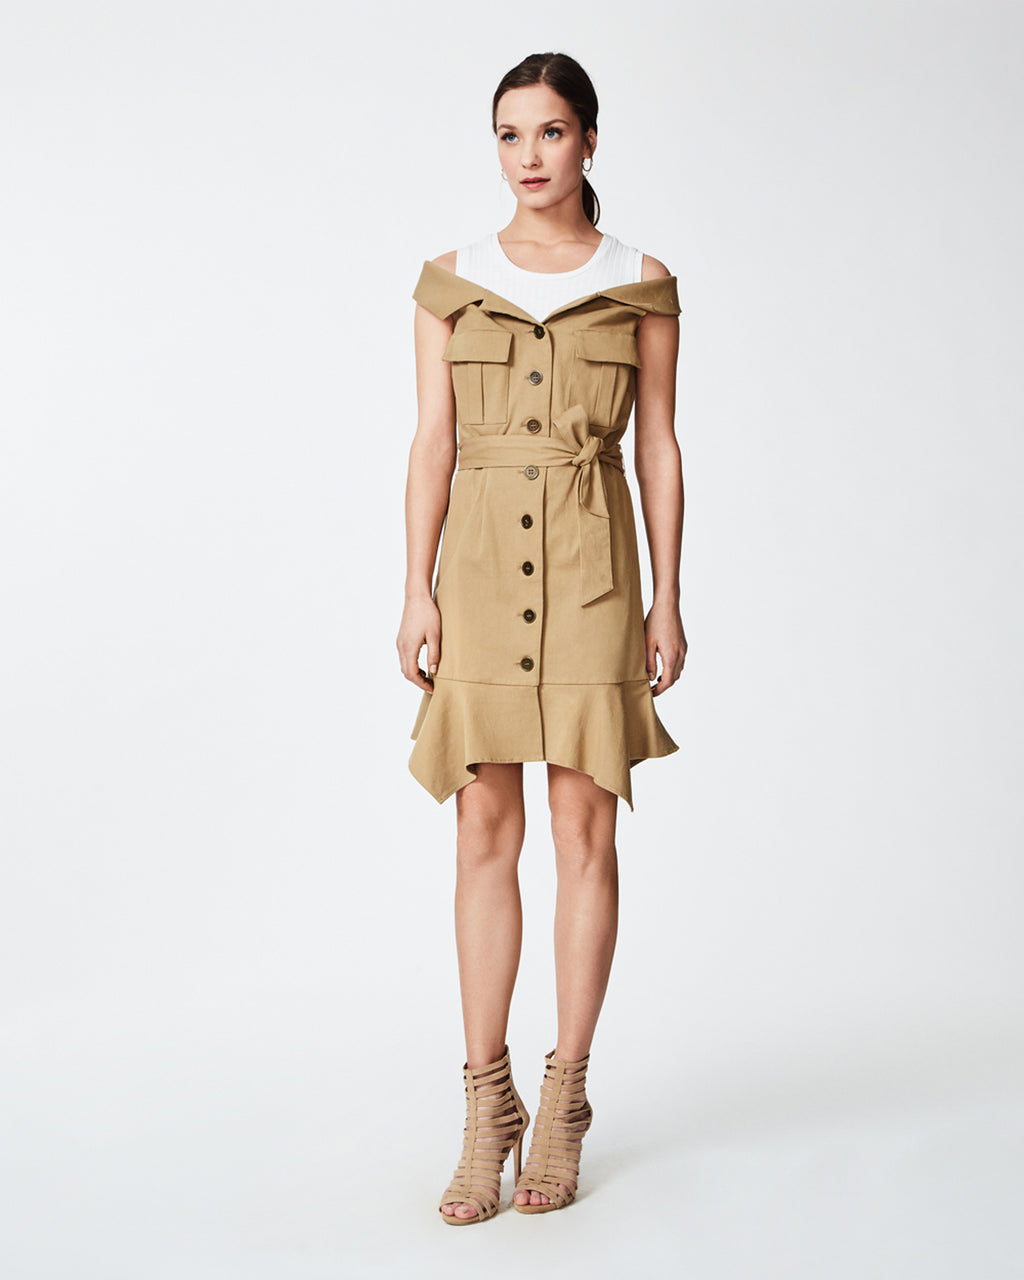 CF10220 - TRENCH DRESS - dresses - short - Trench is the forever chic. The detachable crop top on this dress adds a little fun, while the tarnish hardware completes the look. Finished with a flunce hem and tie belt. Unlined.